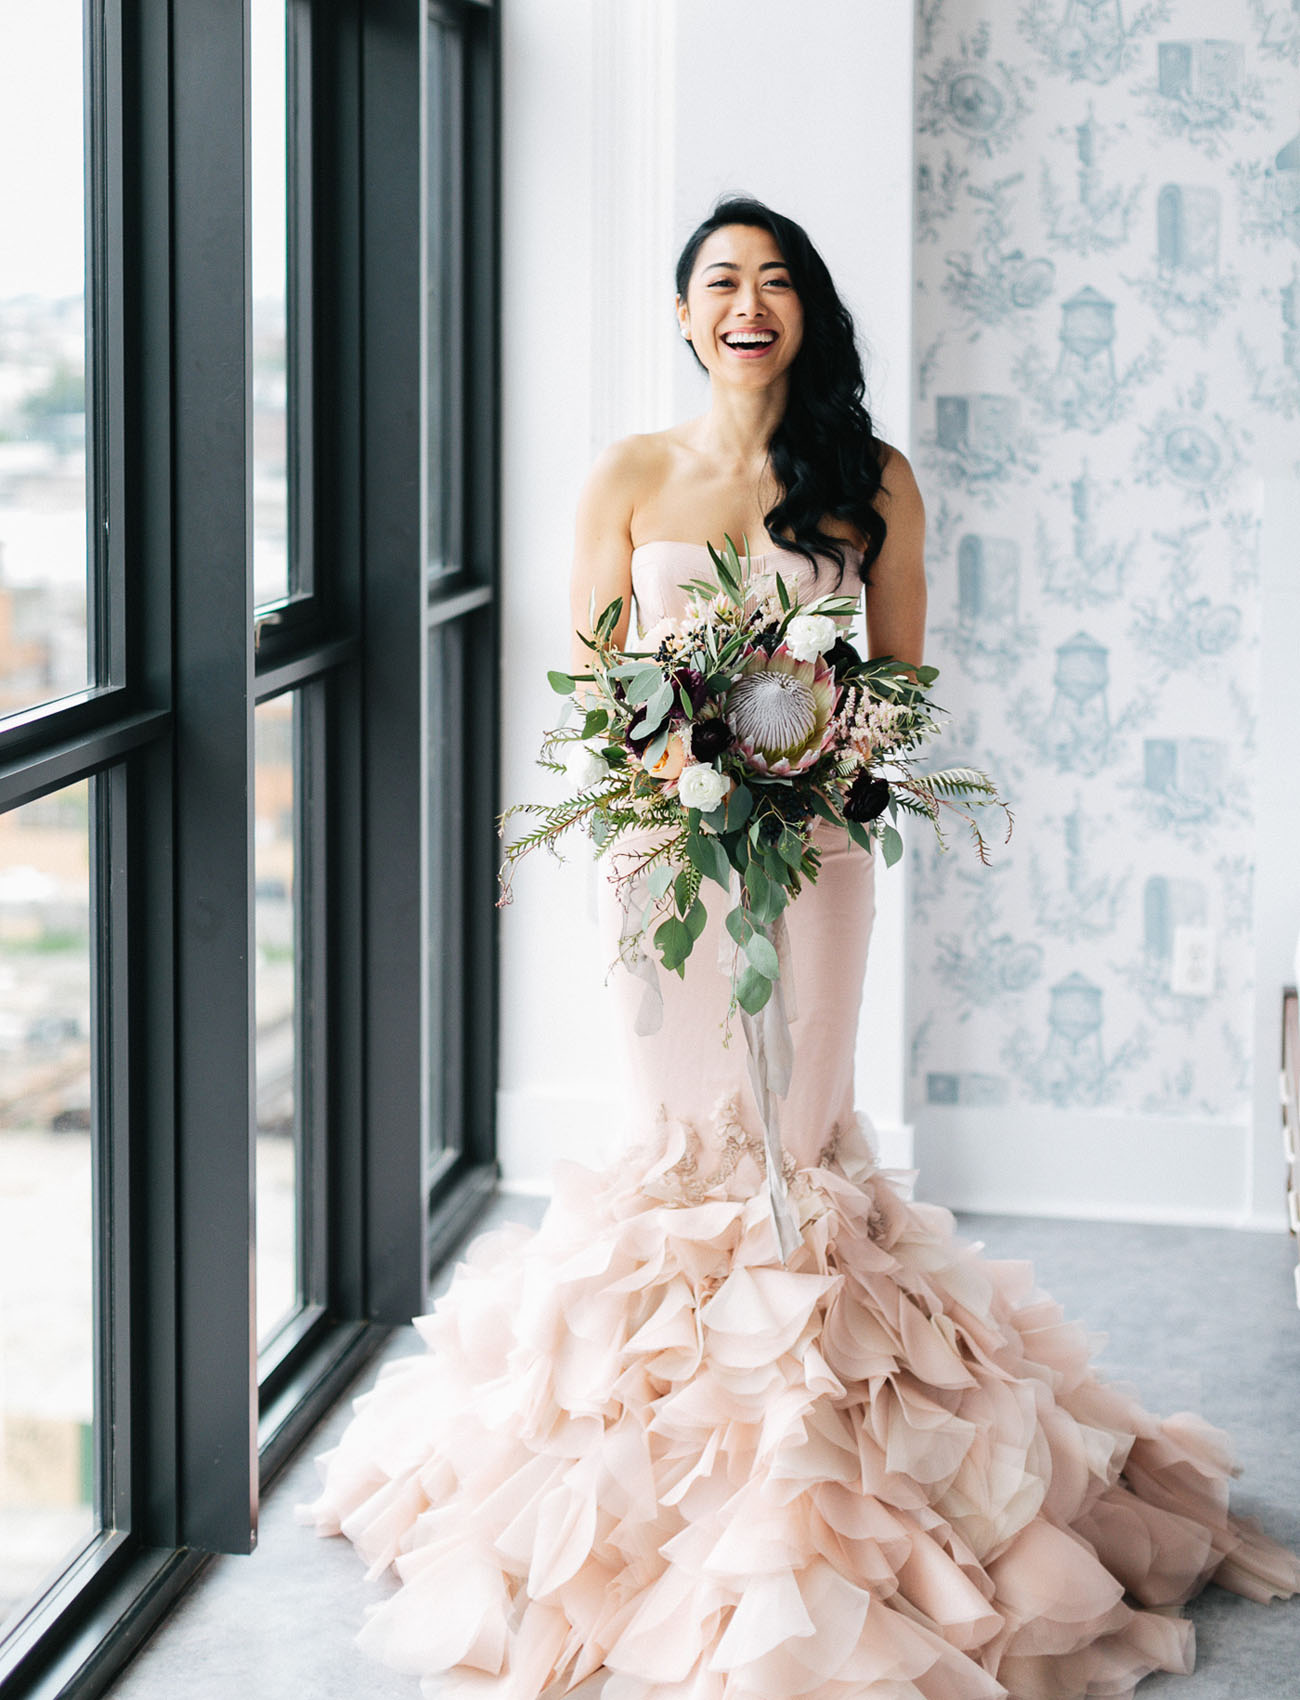 6f10c4857bbc photo: chaz cruz photographers | dress: vera wang | from this: the bride  wore a stunning blush dress at this industrial modern wedding